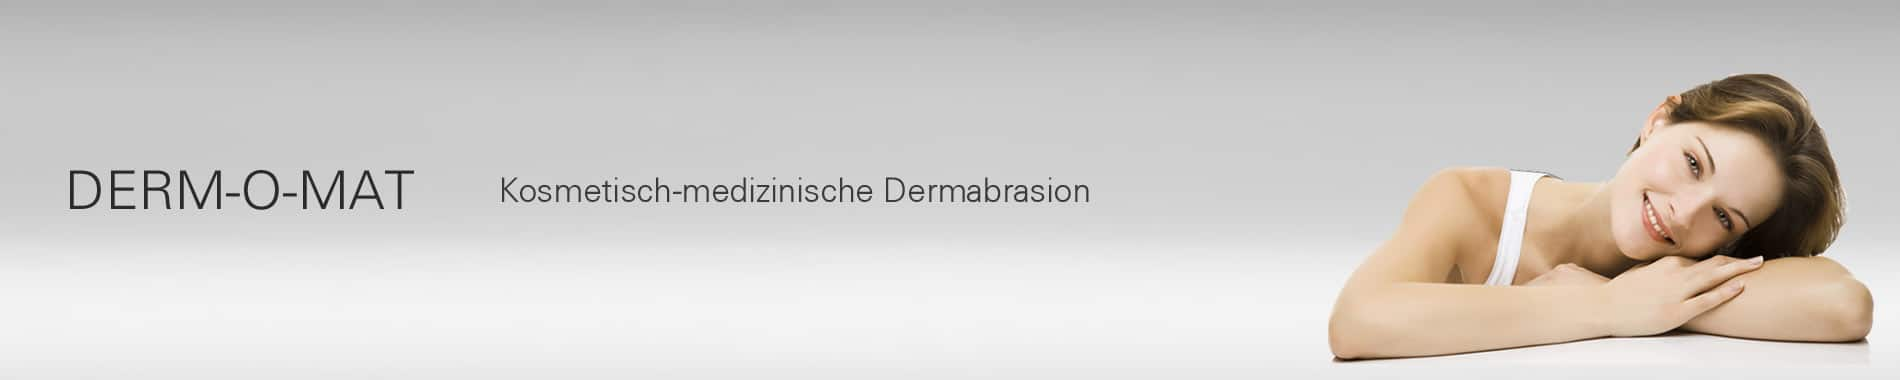 Mikrokristalldermabrasion für ein sanftes bis intensives Peeling. Made in Germany.